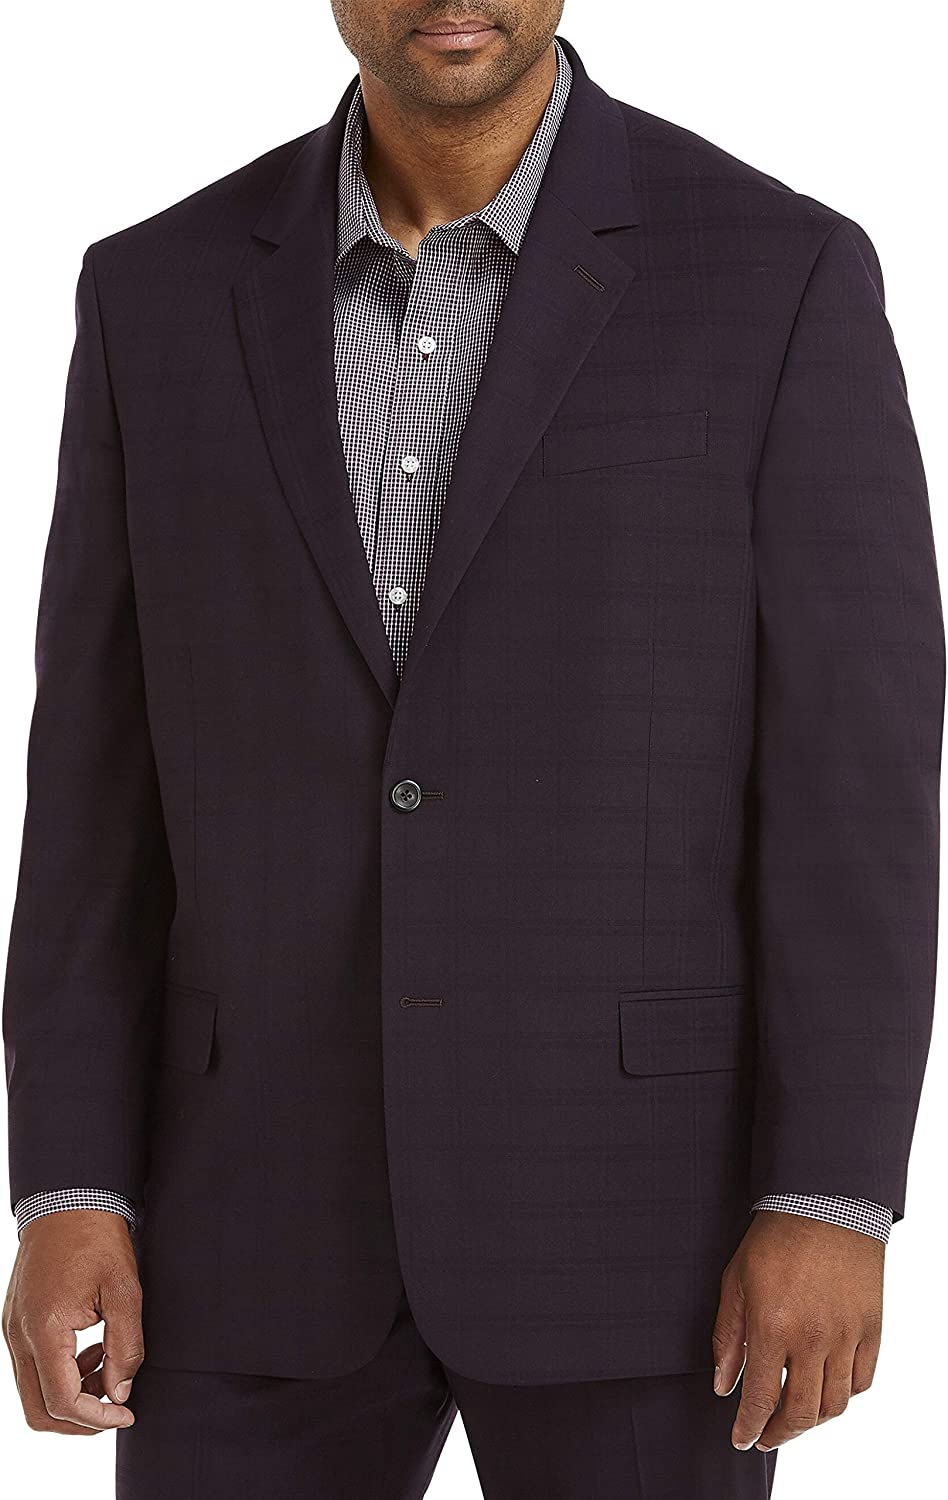 DXL Gold Series Big and Tall Easy Stretch Plaid Suit Jacket, Burgundy